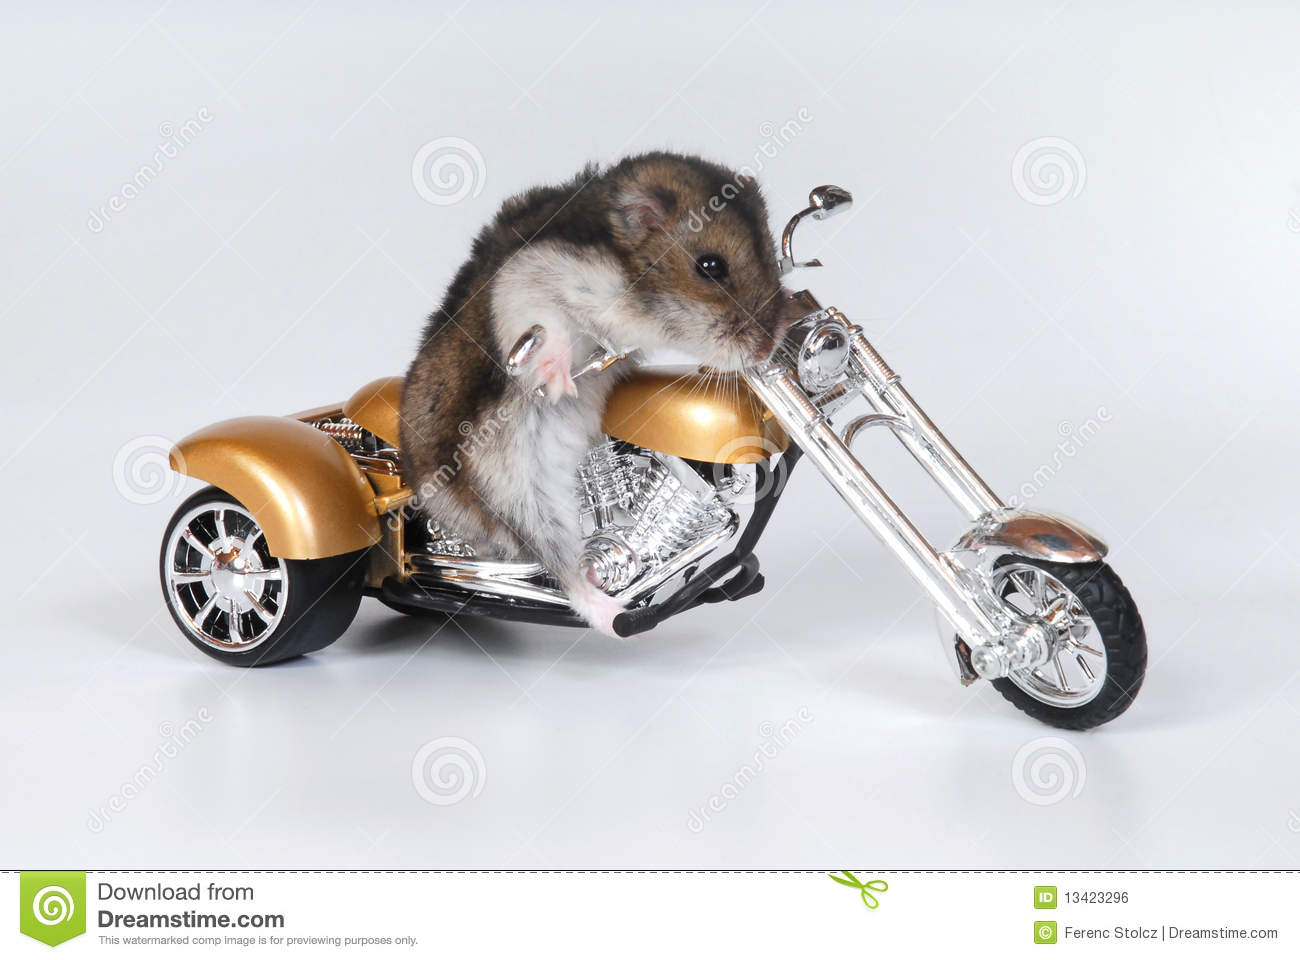 funny image of a hamster riding a toy bike, on white background.